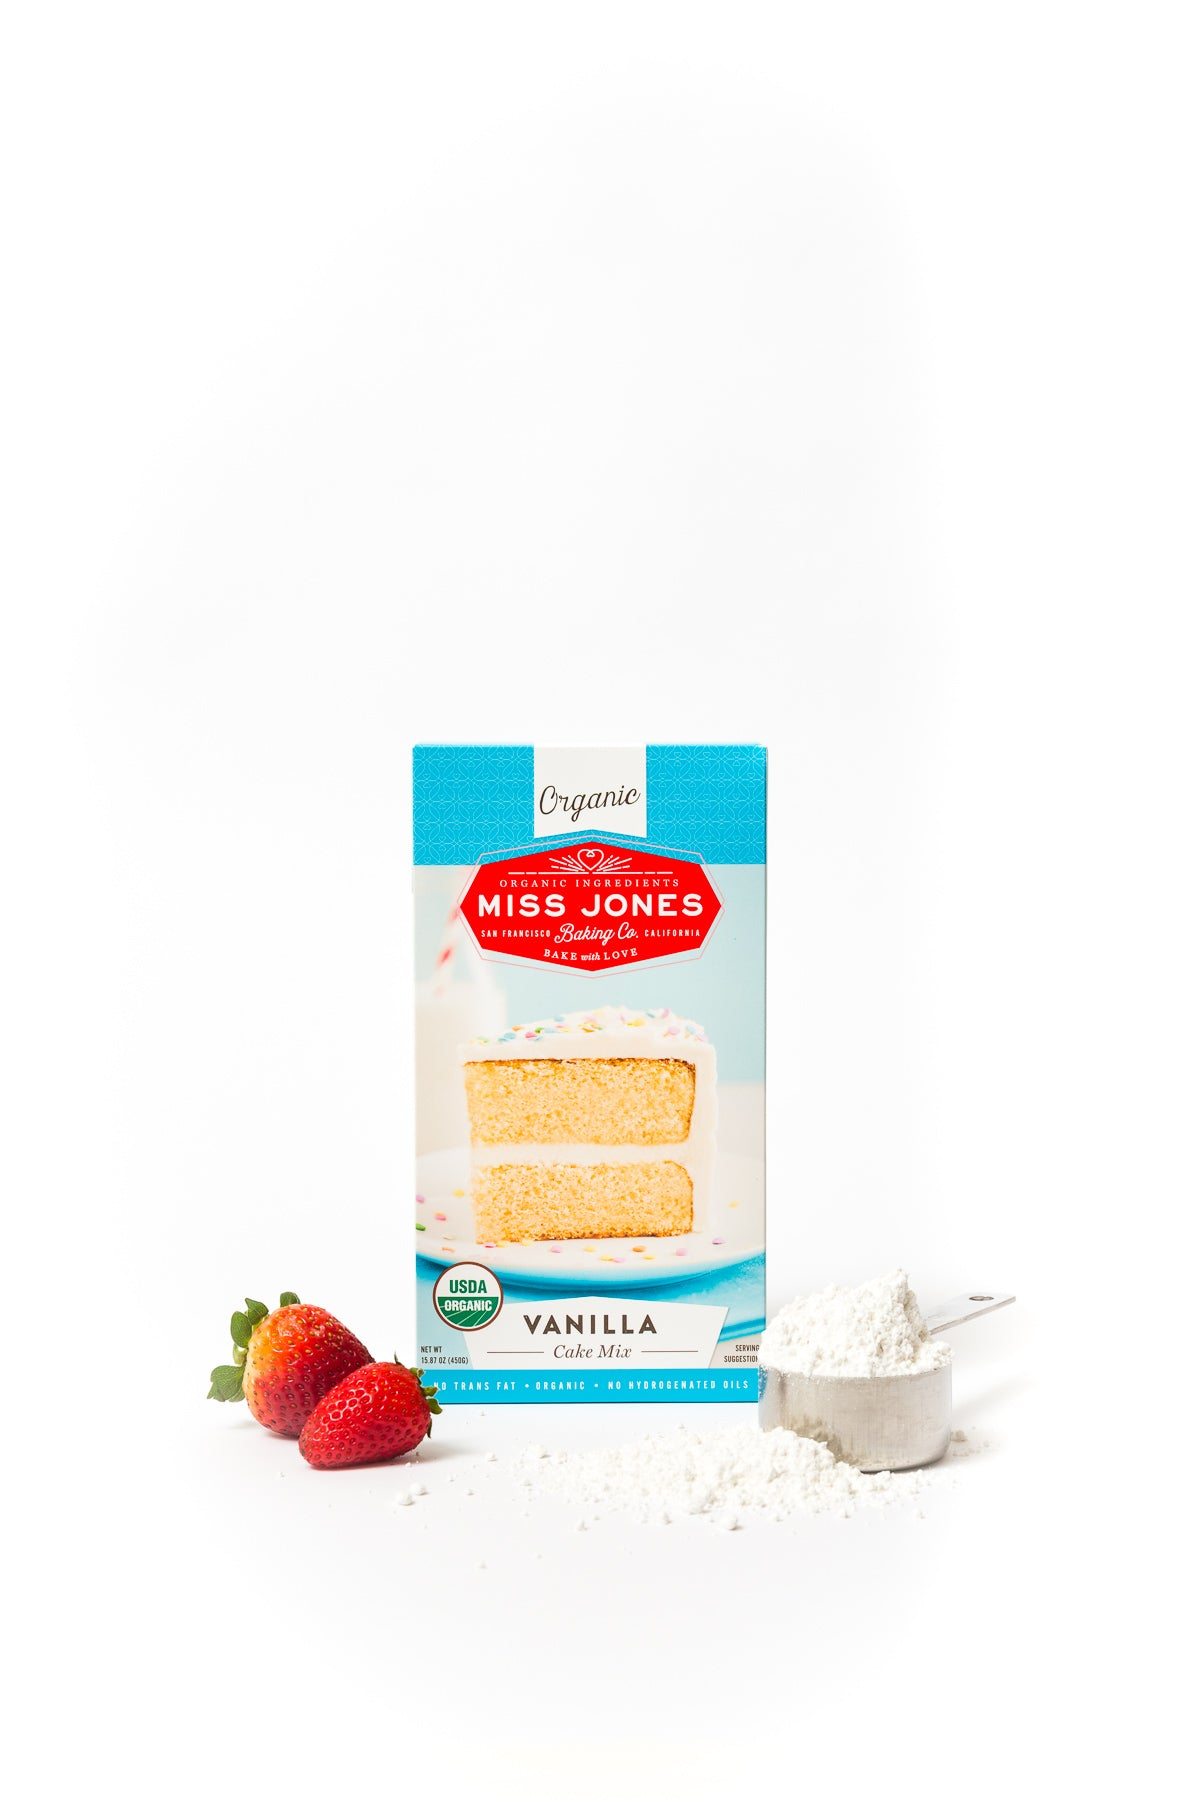 A box of Miss Jones Vanilla Cake Mix next to strawberries and a measuring cup of cake mix for Miss Jones Baking Co Strawberry Buttermilk Donuts recipe